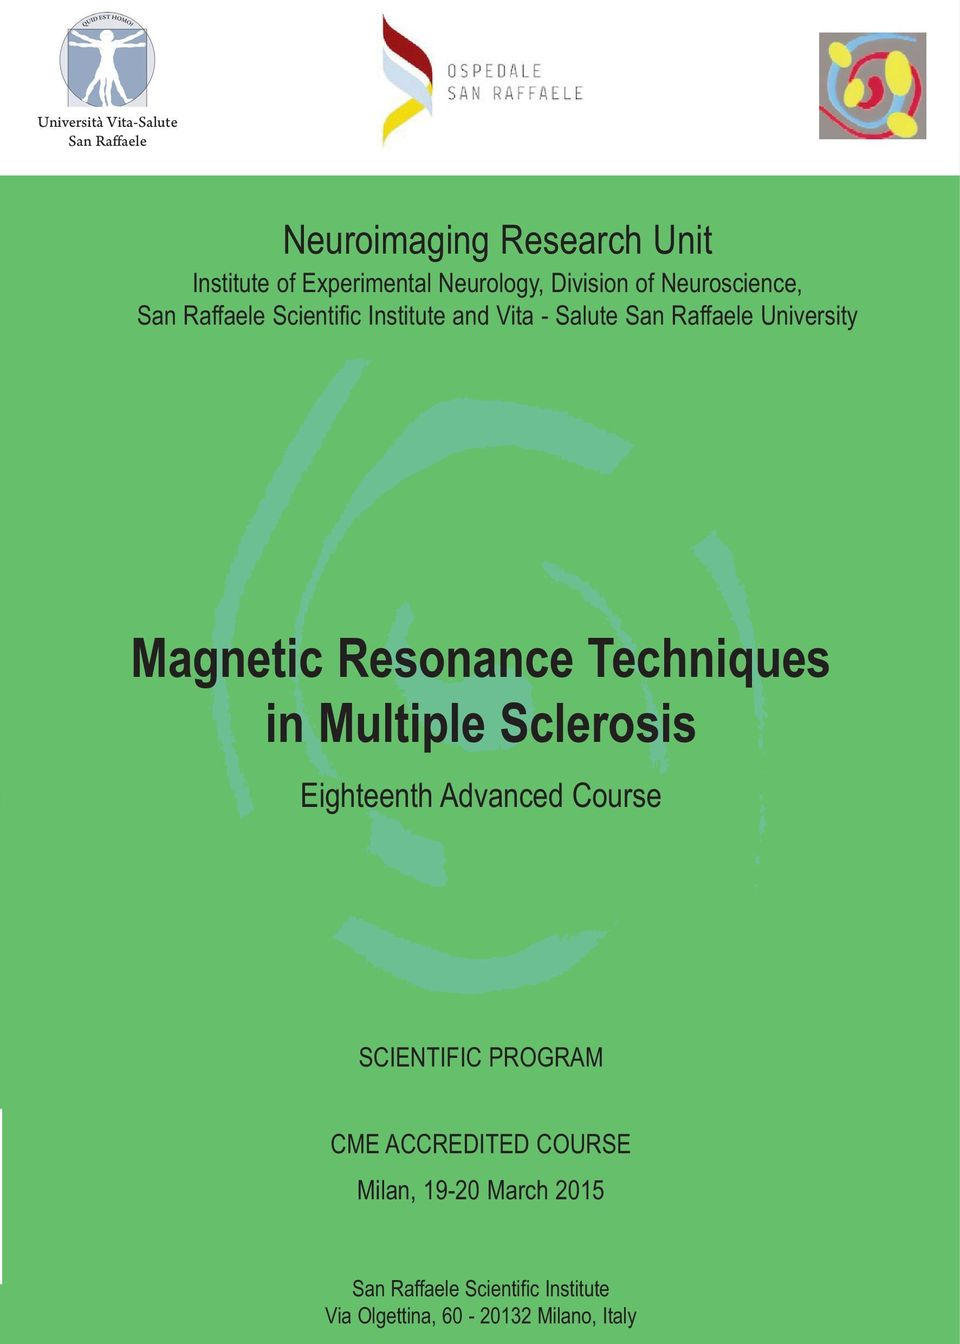 Raffaele University Magnetic Resonance Techniques in Multiple Sclerosis Eighteenth Advanced Course